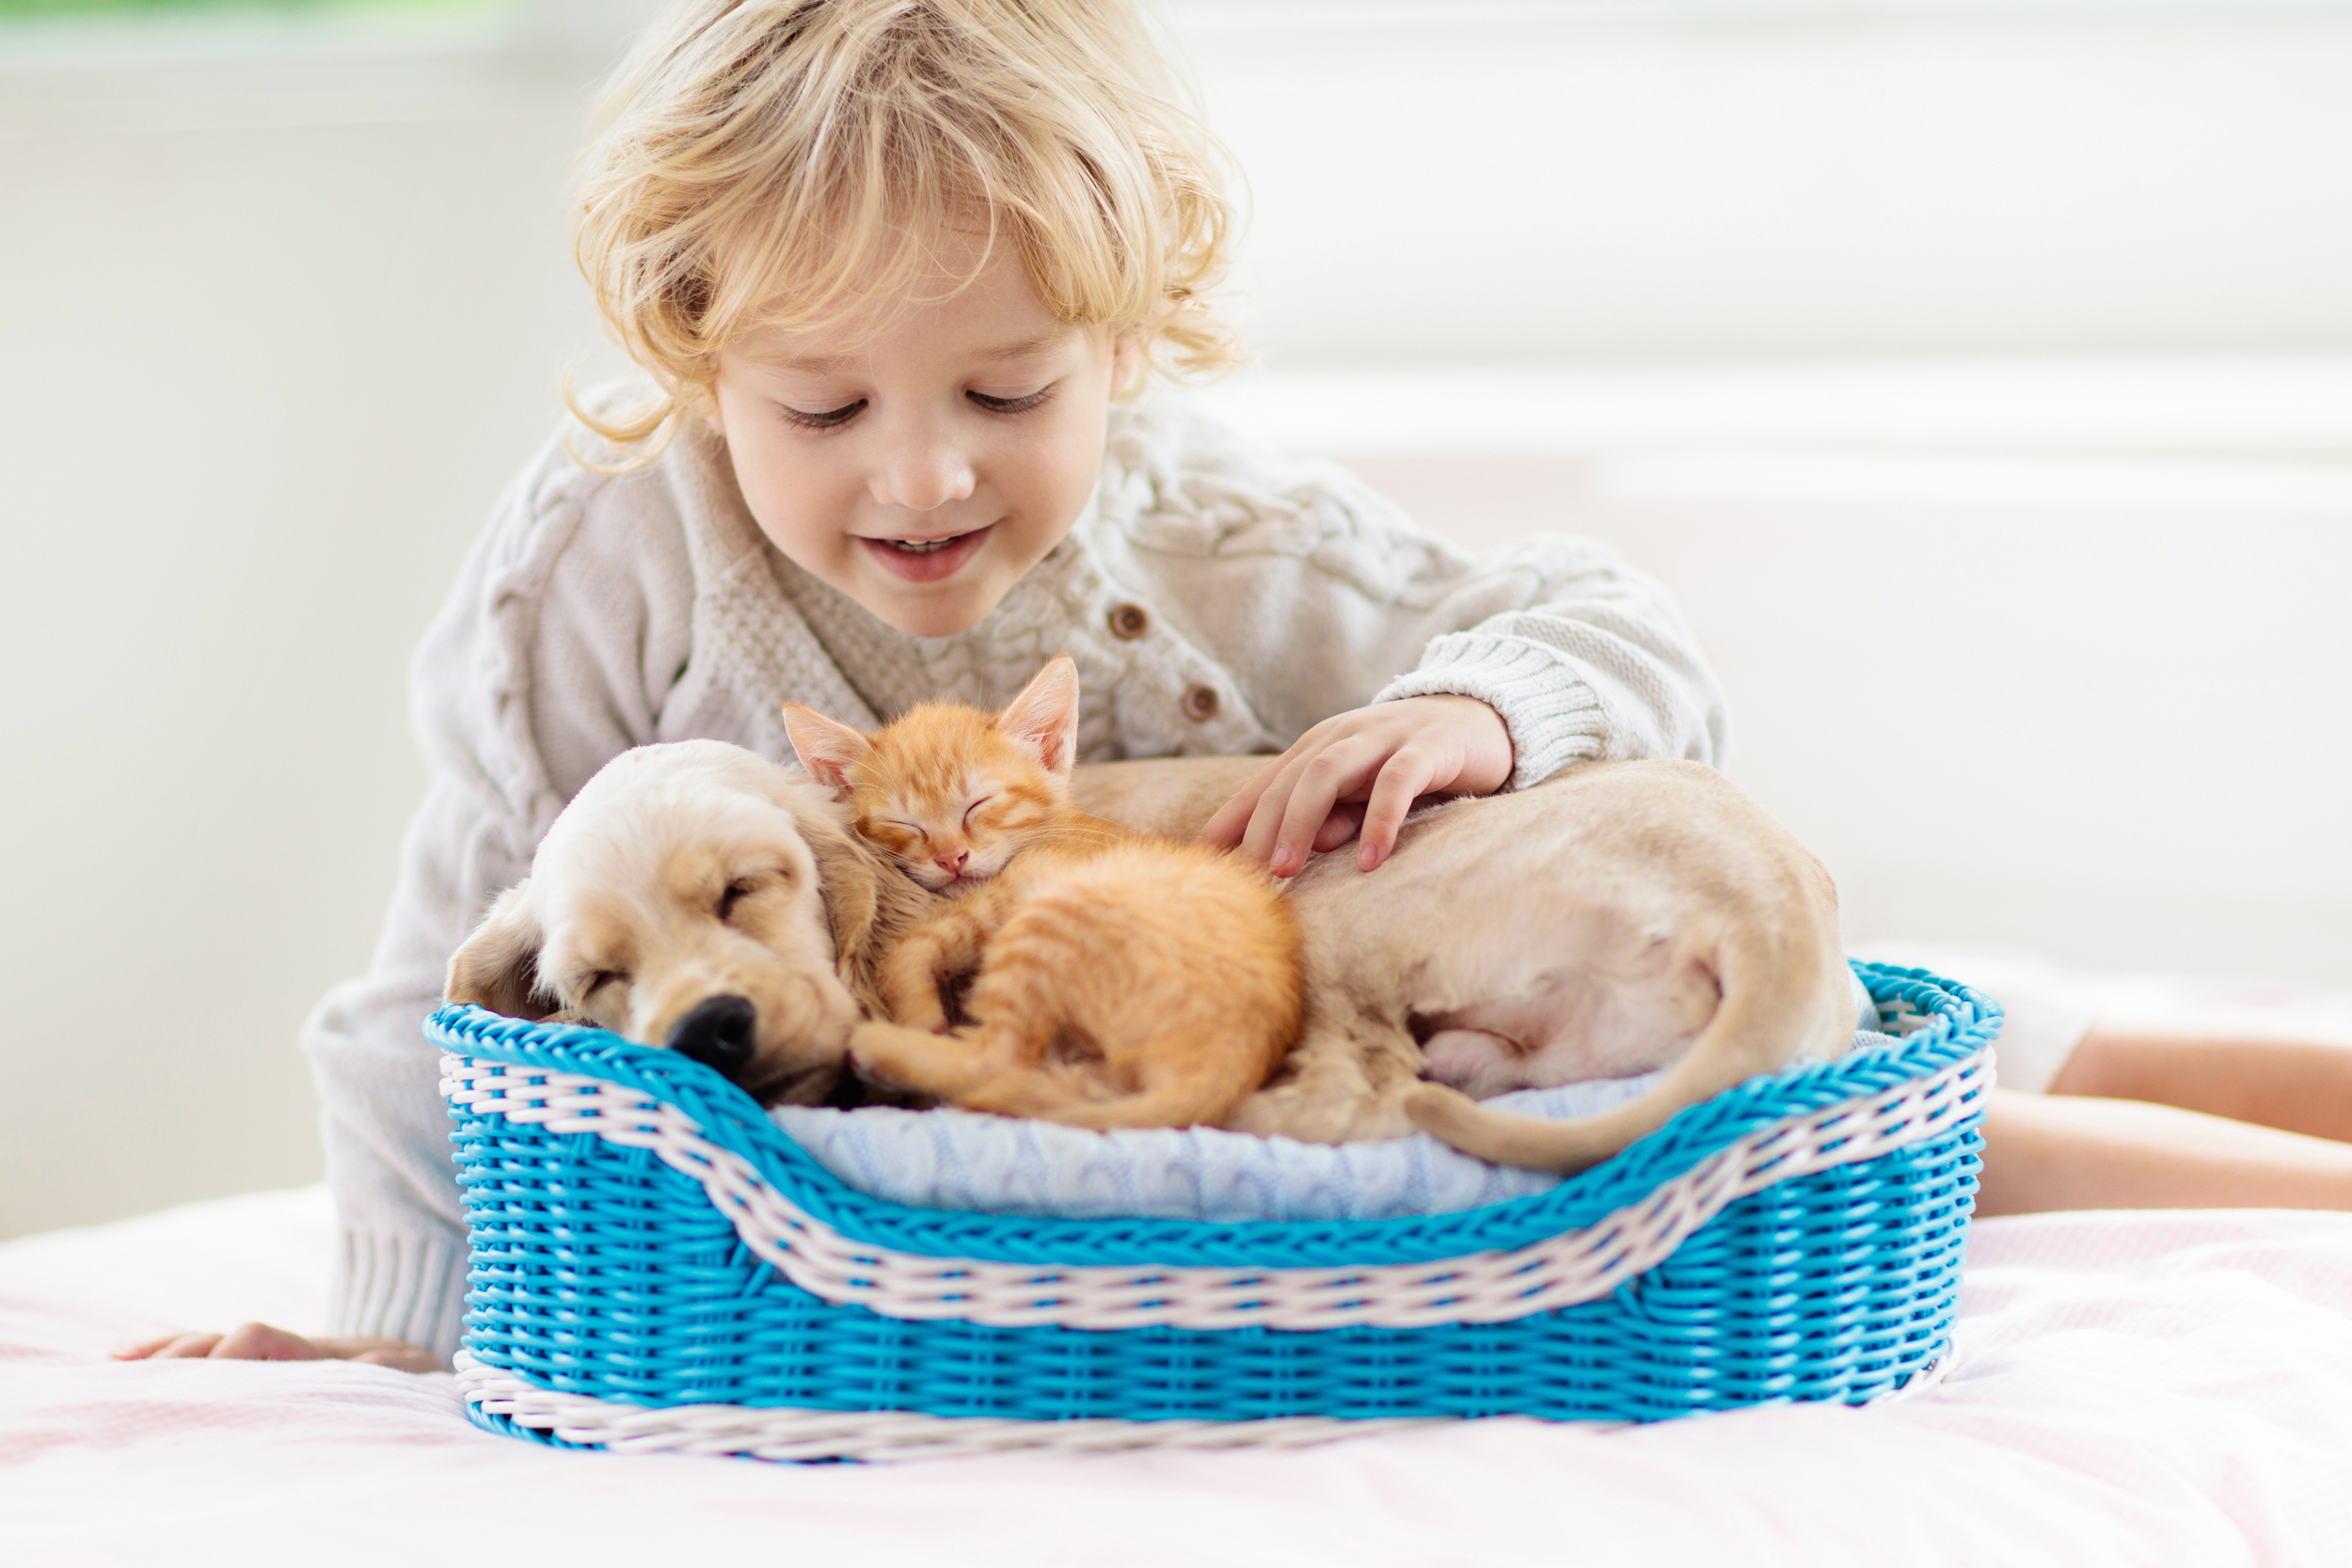 15 Best Pet Products For Dogs And Cats For Safety Health And Fun